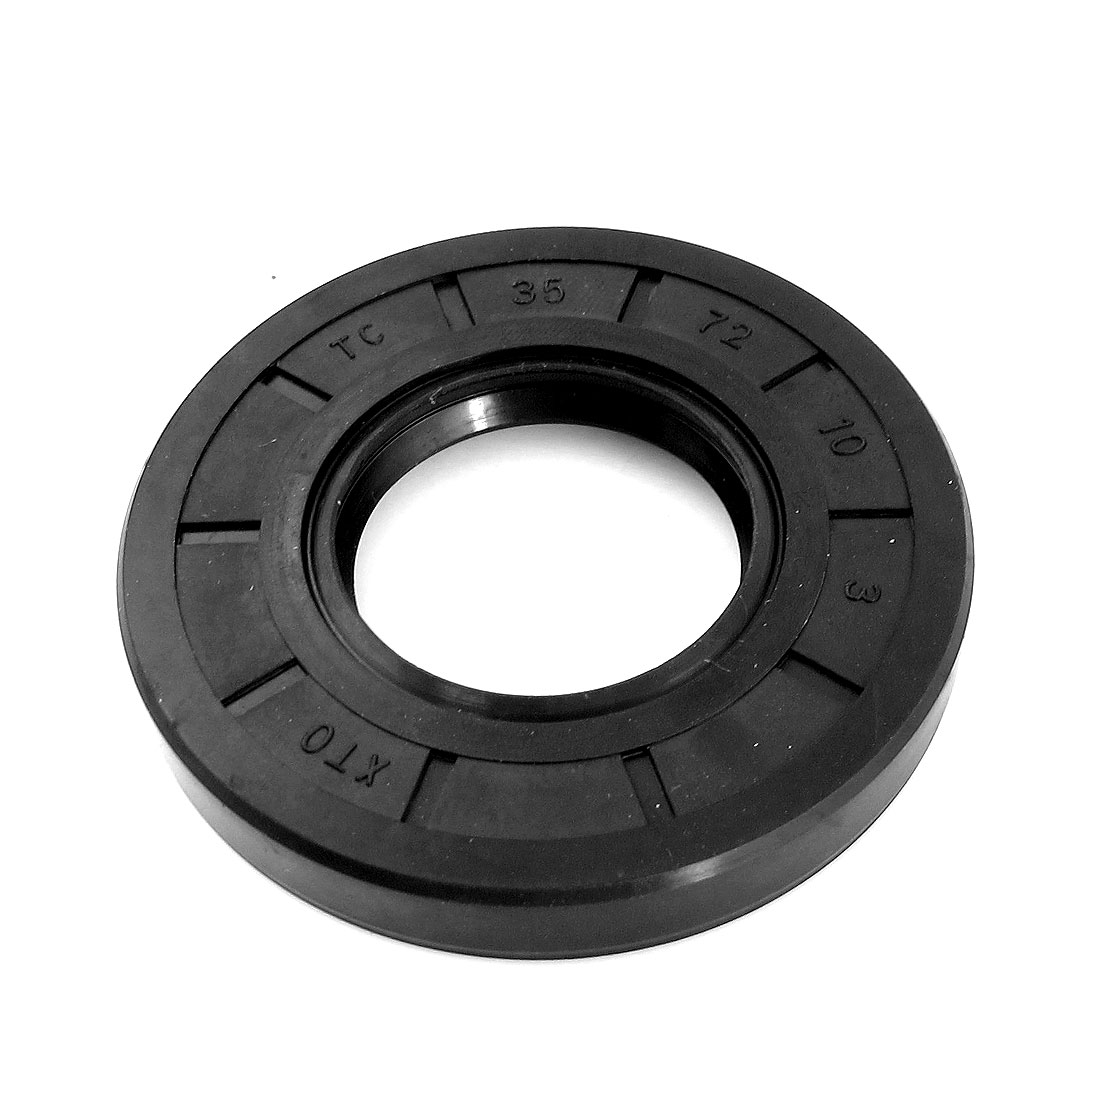 Black 72 x 35 x 10mm Rubber Oil Seal Sealing Ring Gasket Washer